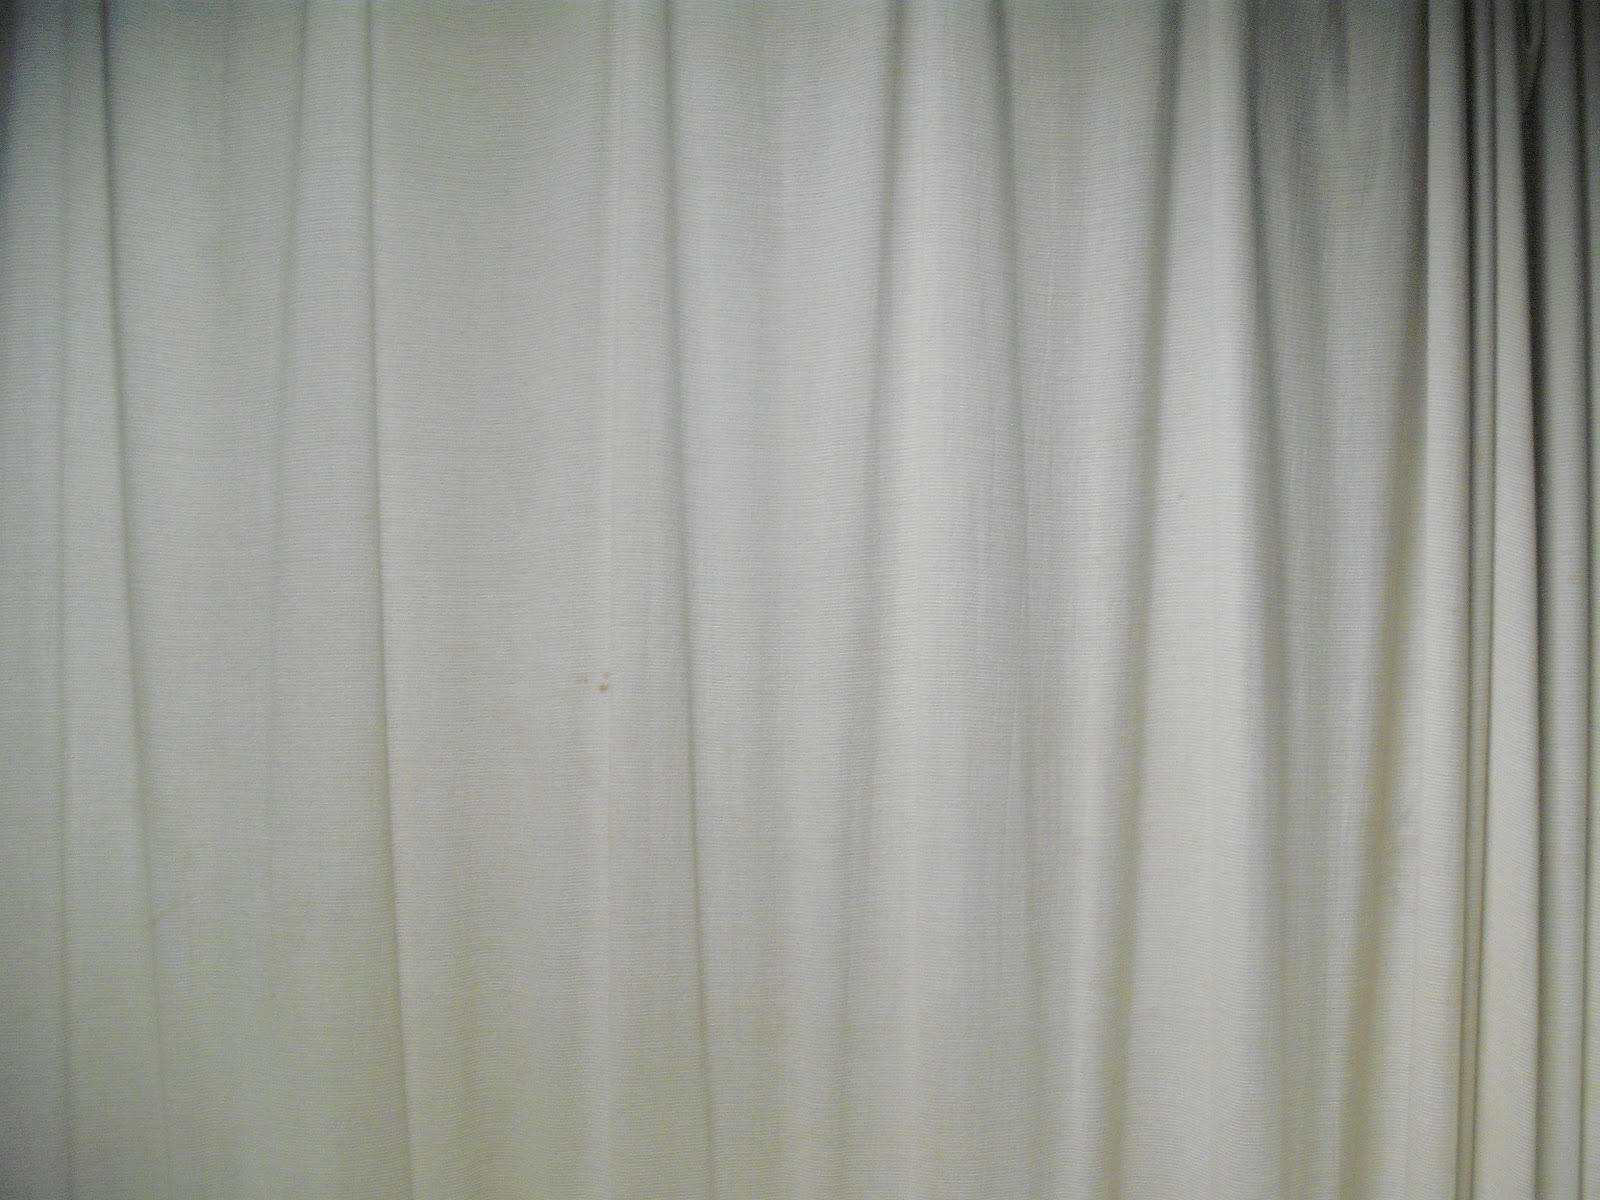 White curtain wallpaper - Viewing Gallery For White Curtain Background